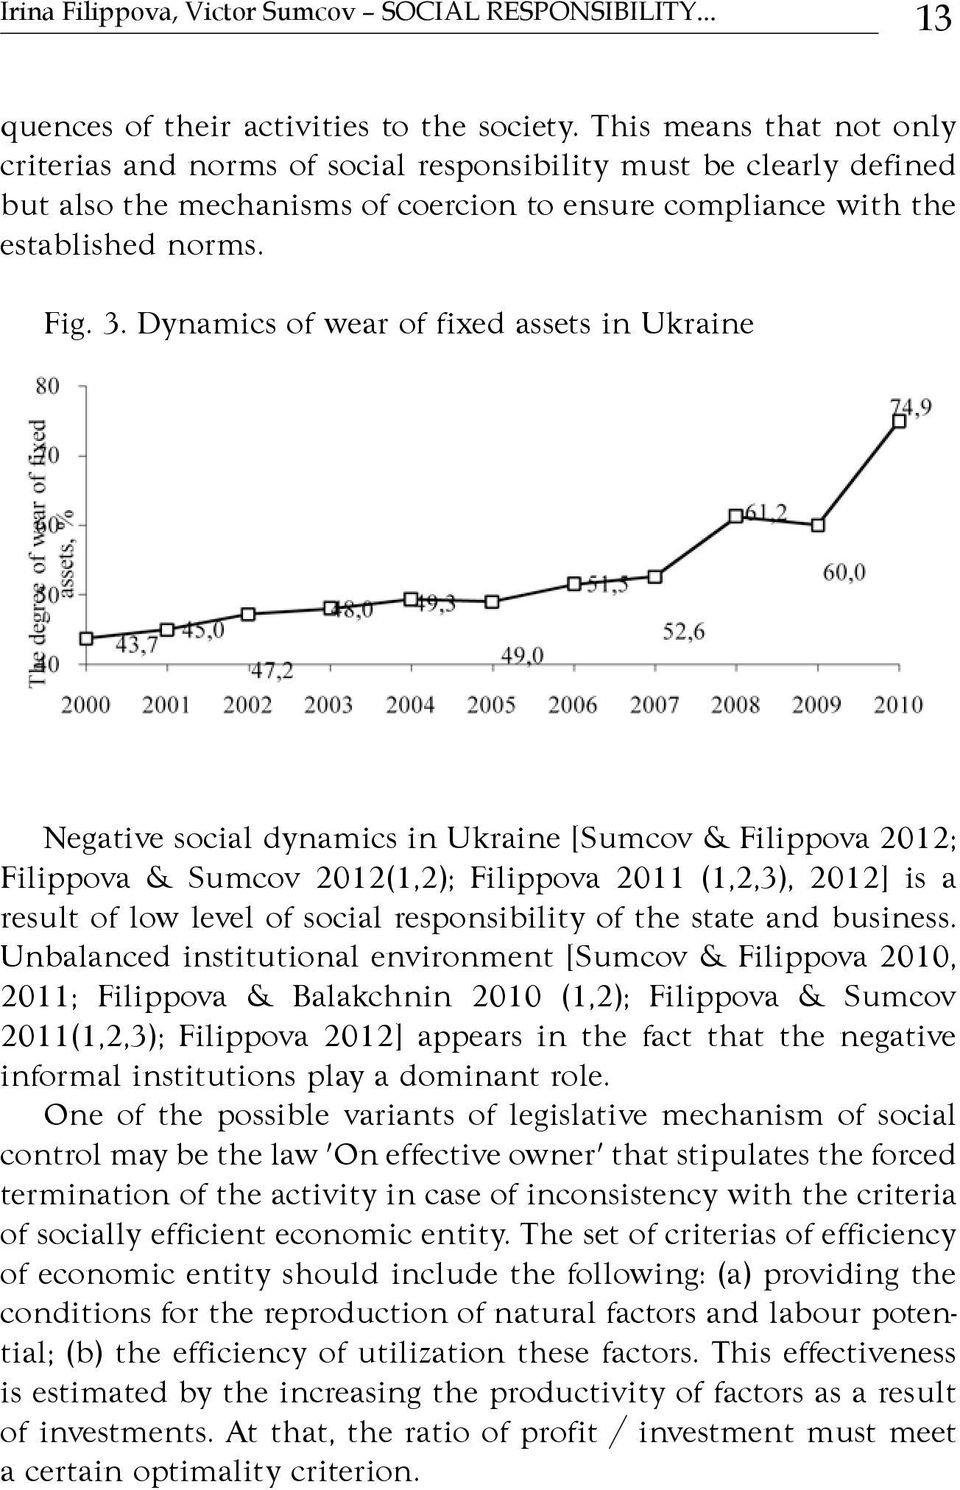 Dynamics of wear of fixed assets in Ukraine Negative social dynamics in Ukraine [Sumcov & Filippova 2012; Filippova & Sumcov 2012(1,2); Filippova 2011 (1,2,3), 2012] is a result of low level of